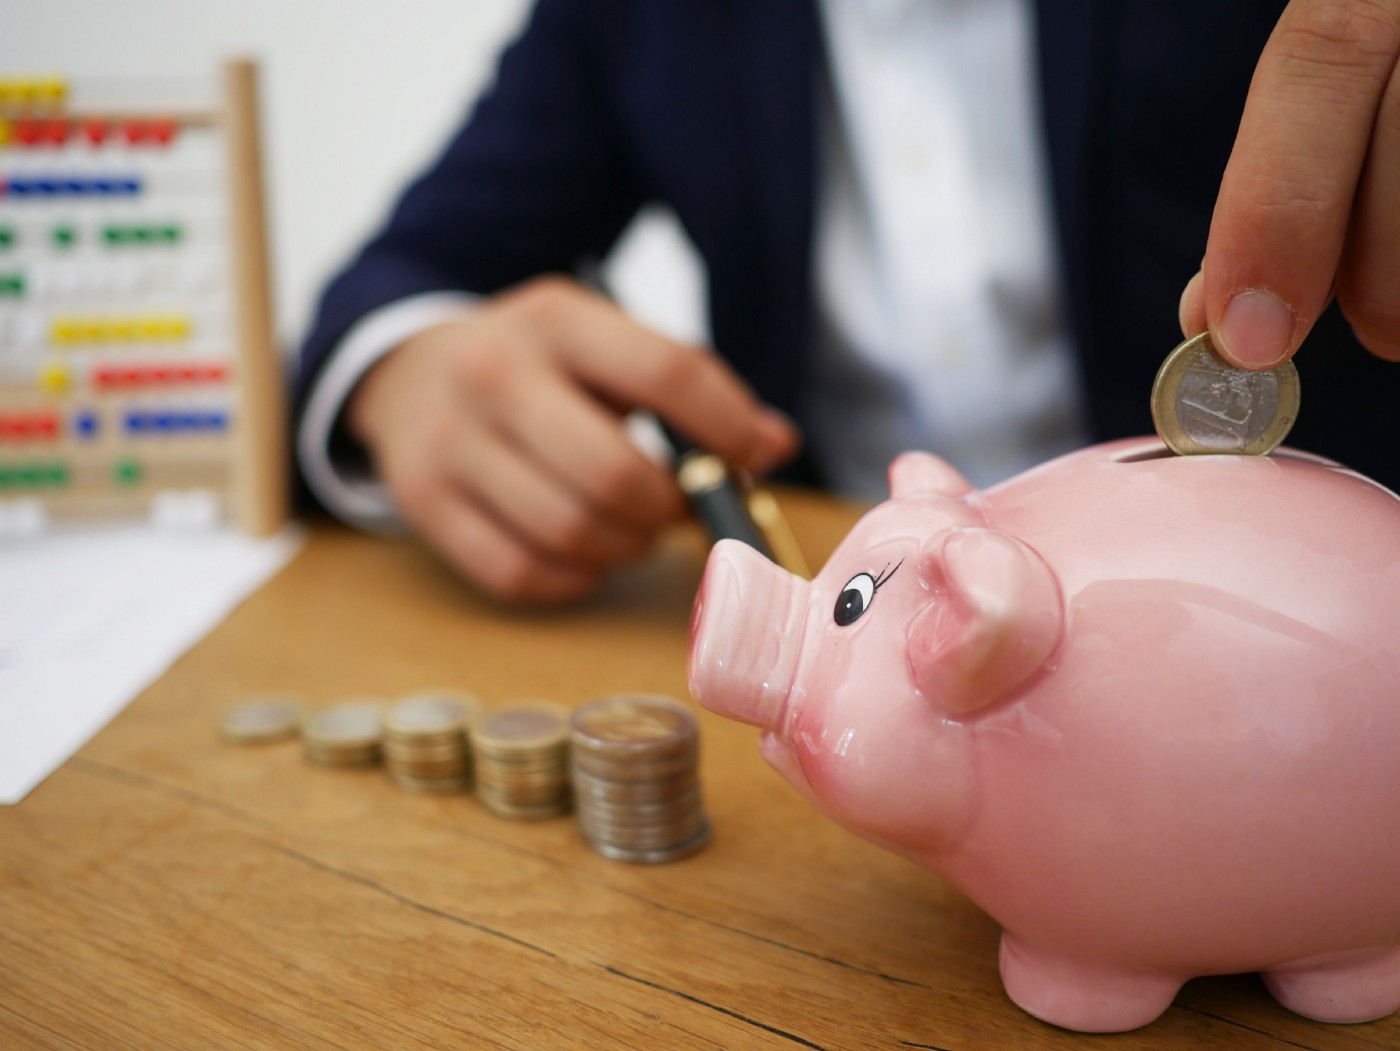 Person inserting coin into piggy bank